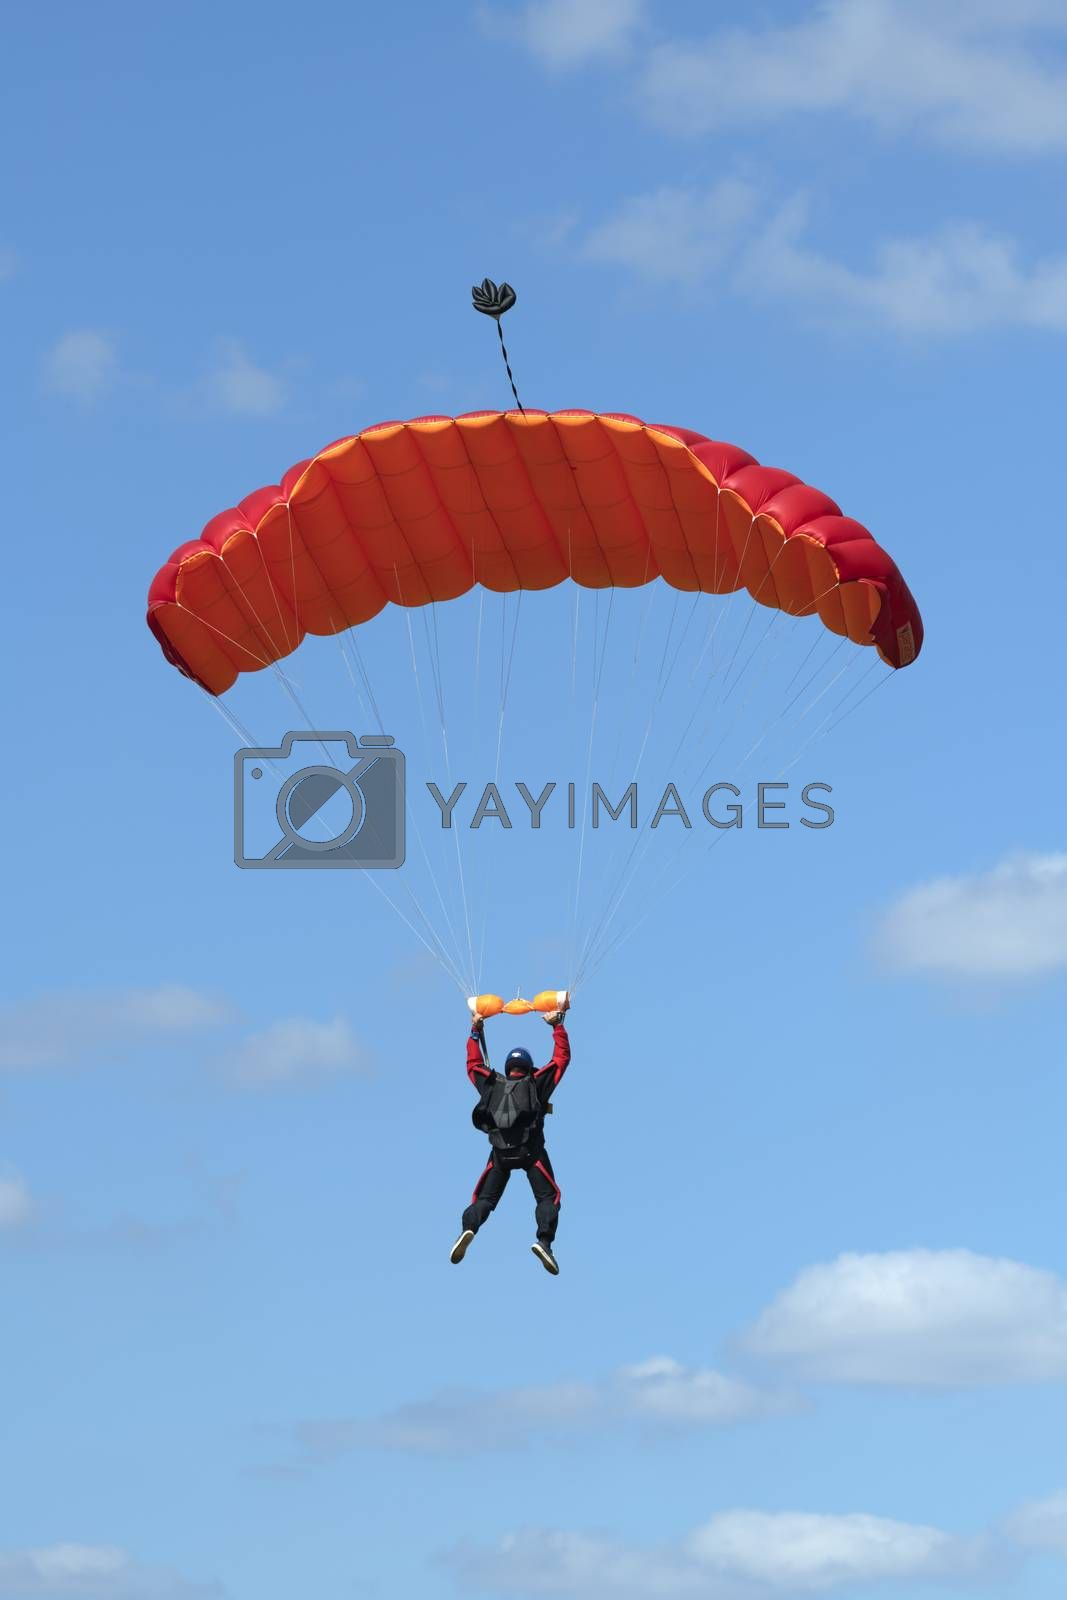 Parachutist floating to a red square-shaped parachute